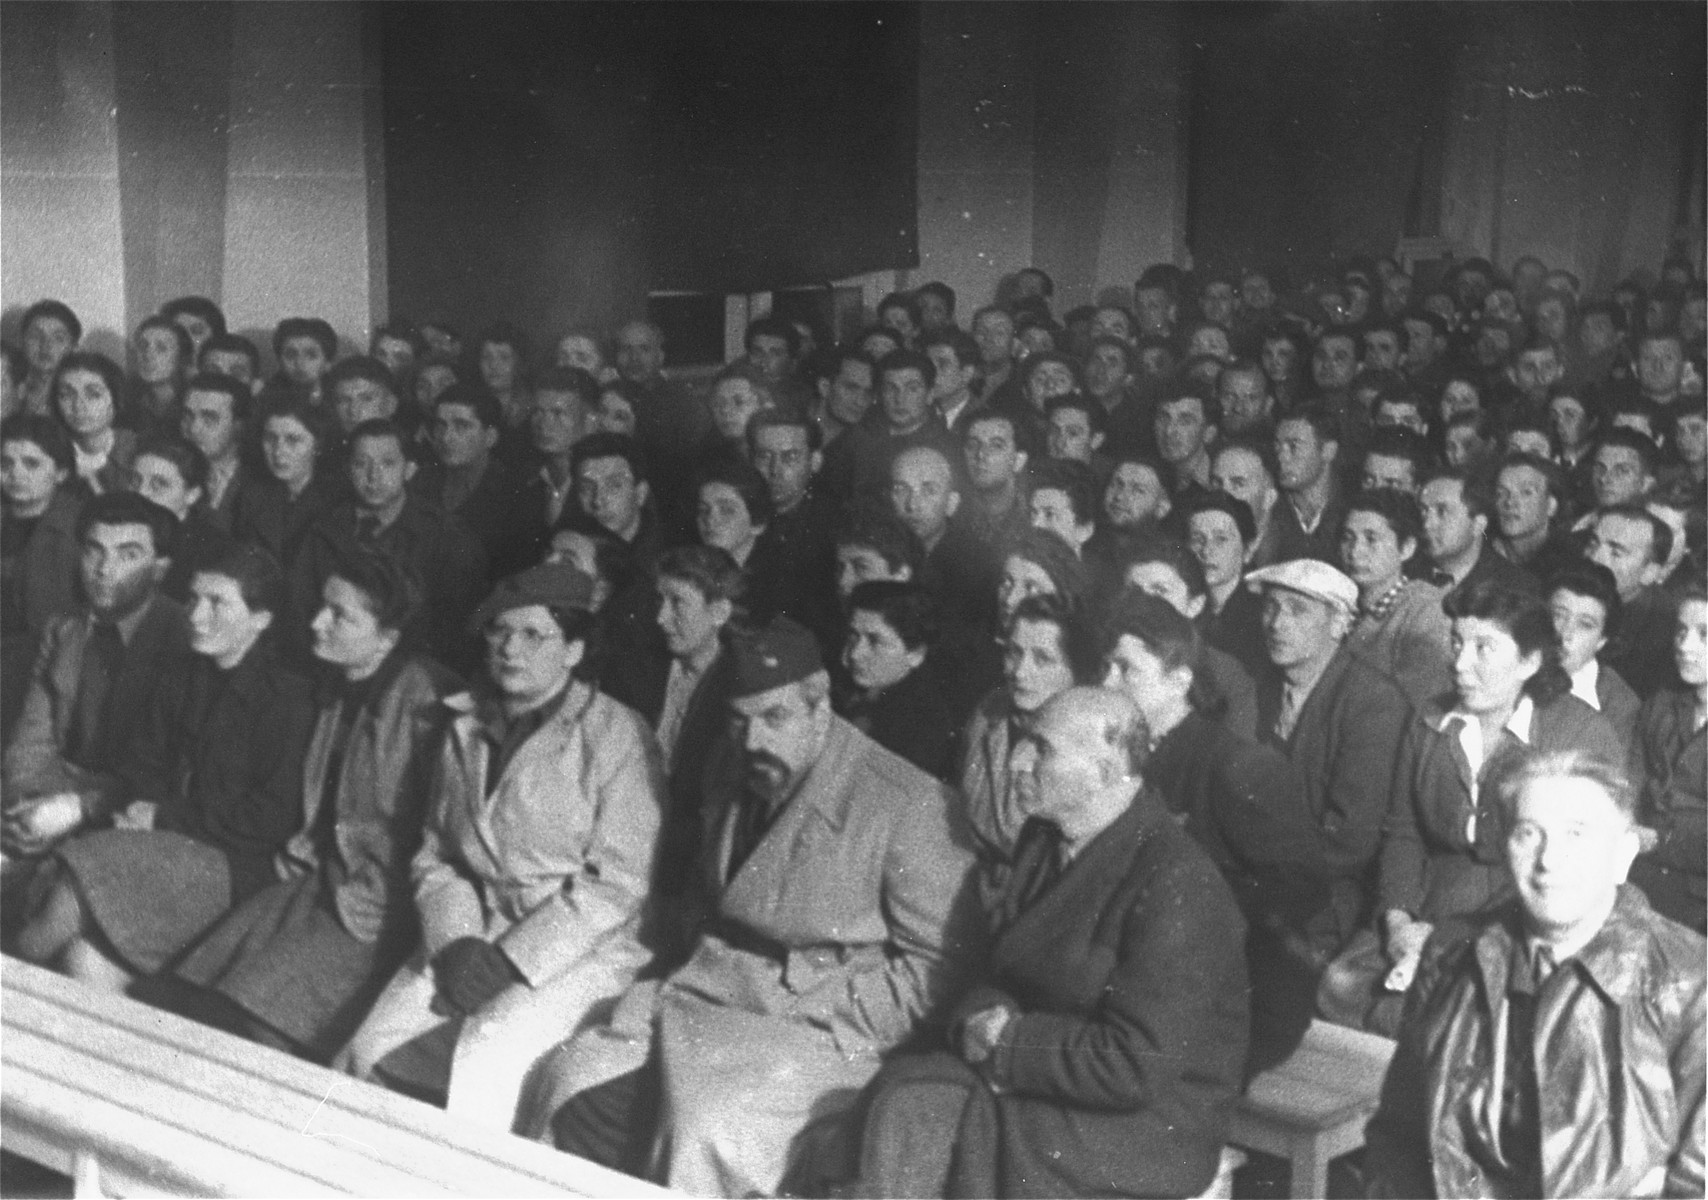 View of the audience on the opening day of the first conference of the Central Committee of Liberated Jews in the U.S. Zone of Germany.